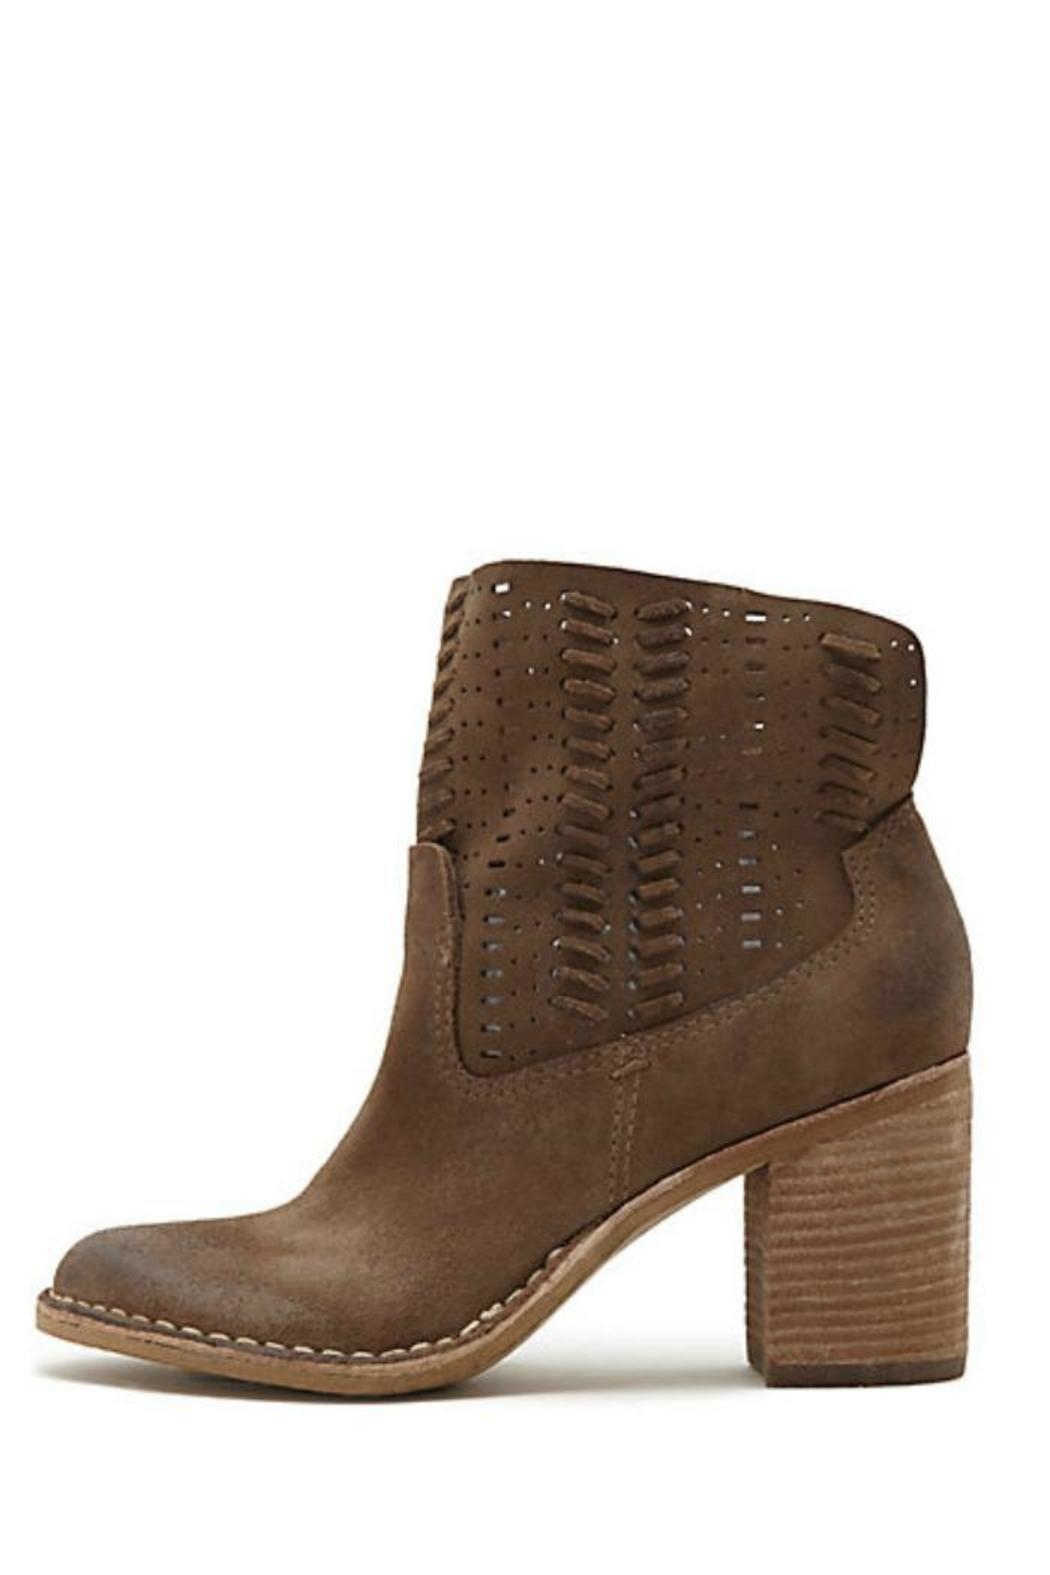 Dolce Vita Landon Heeled Bootie - Front Cropped Image